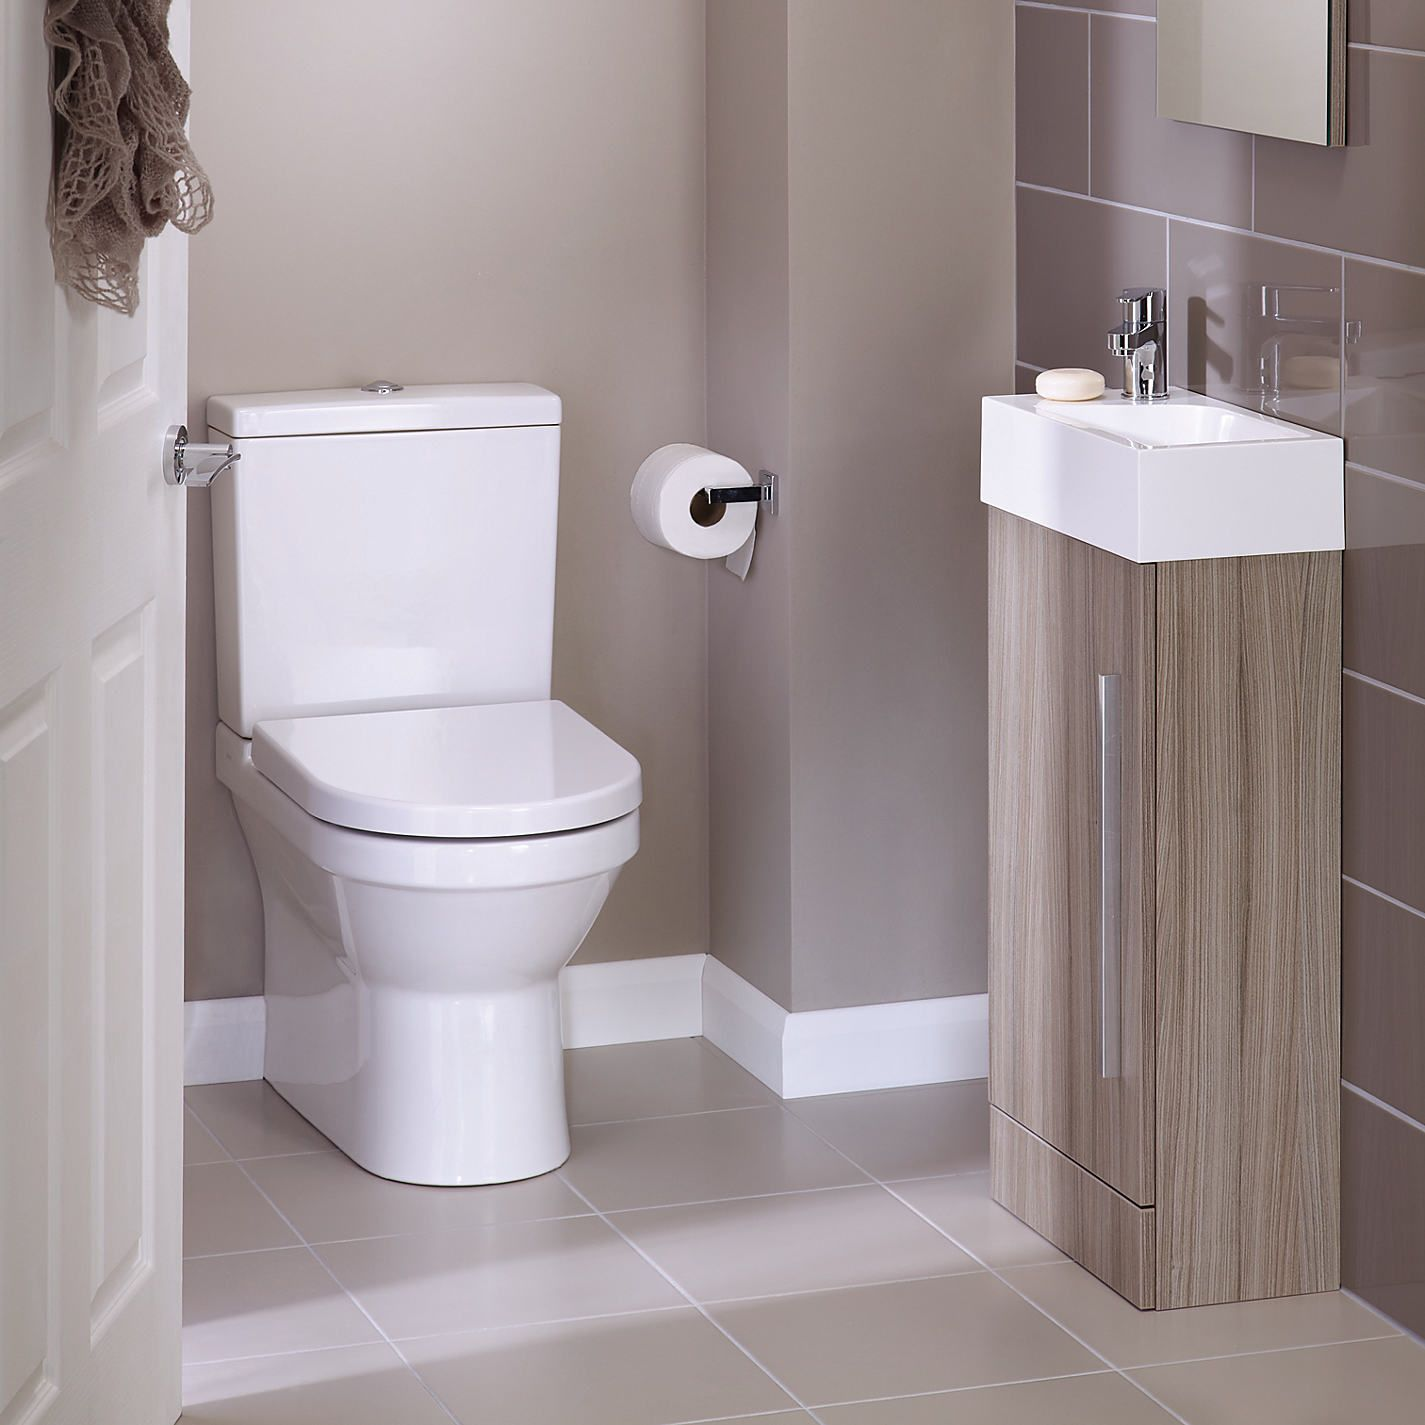 Small cloakroom ideas google search for the home for Narrow bathroom ideas uk